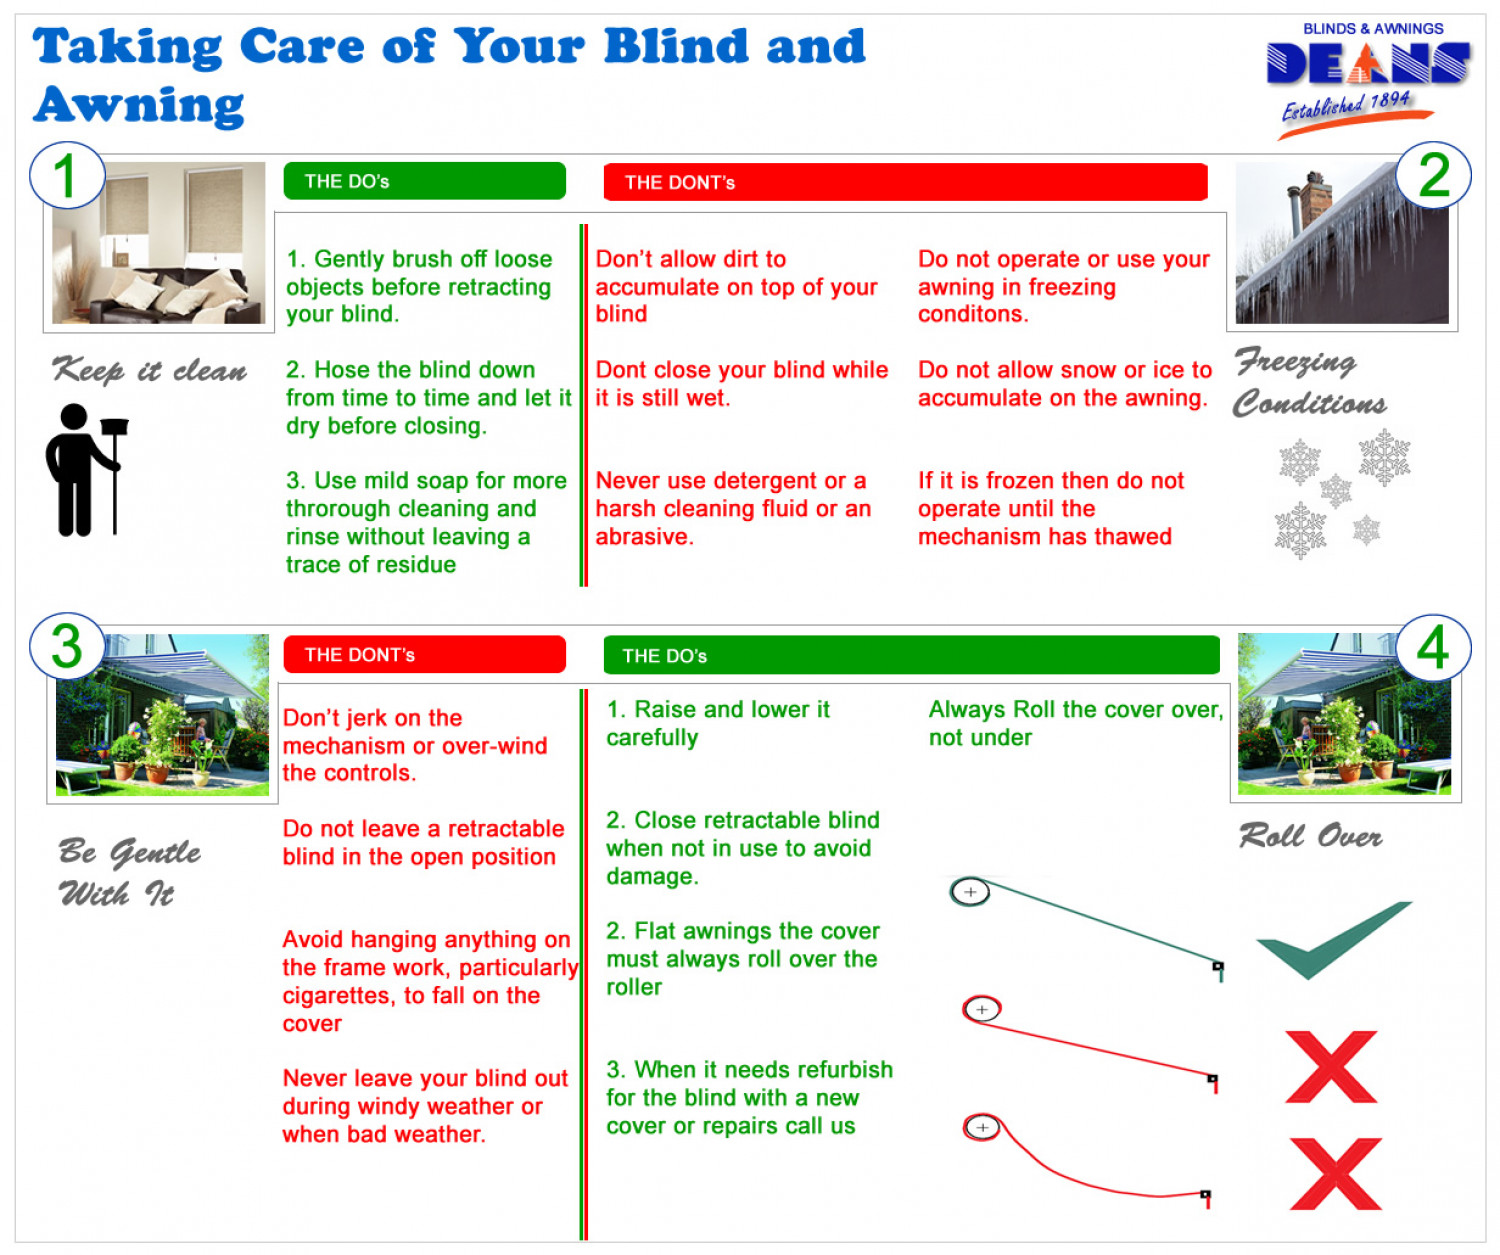 Taking Care of Your Awnings During Bad Weather Infographic